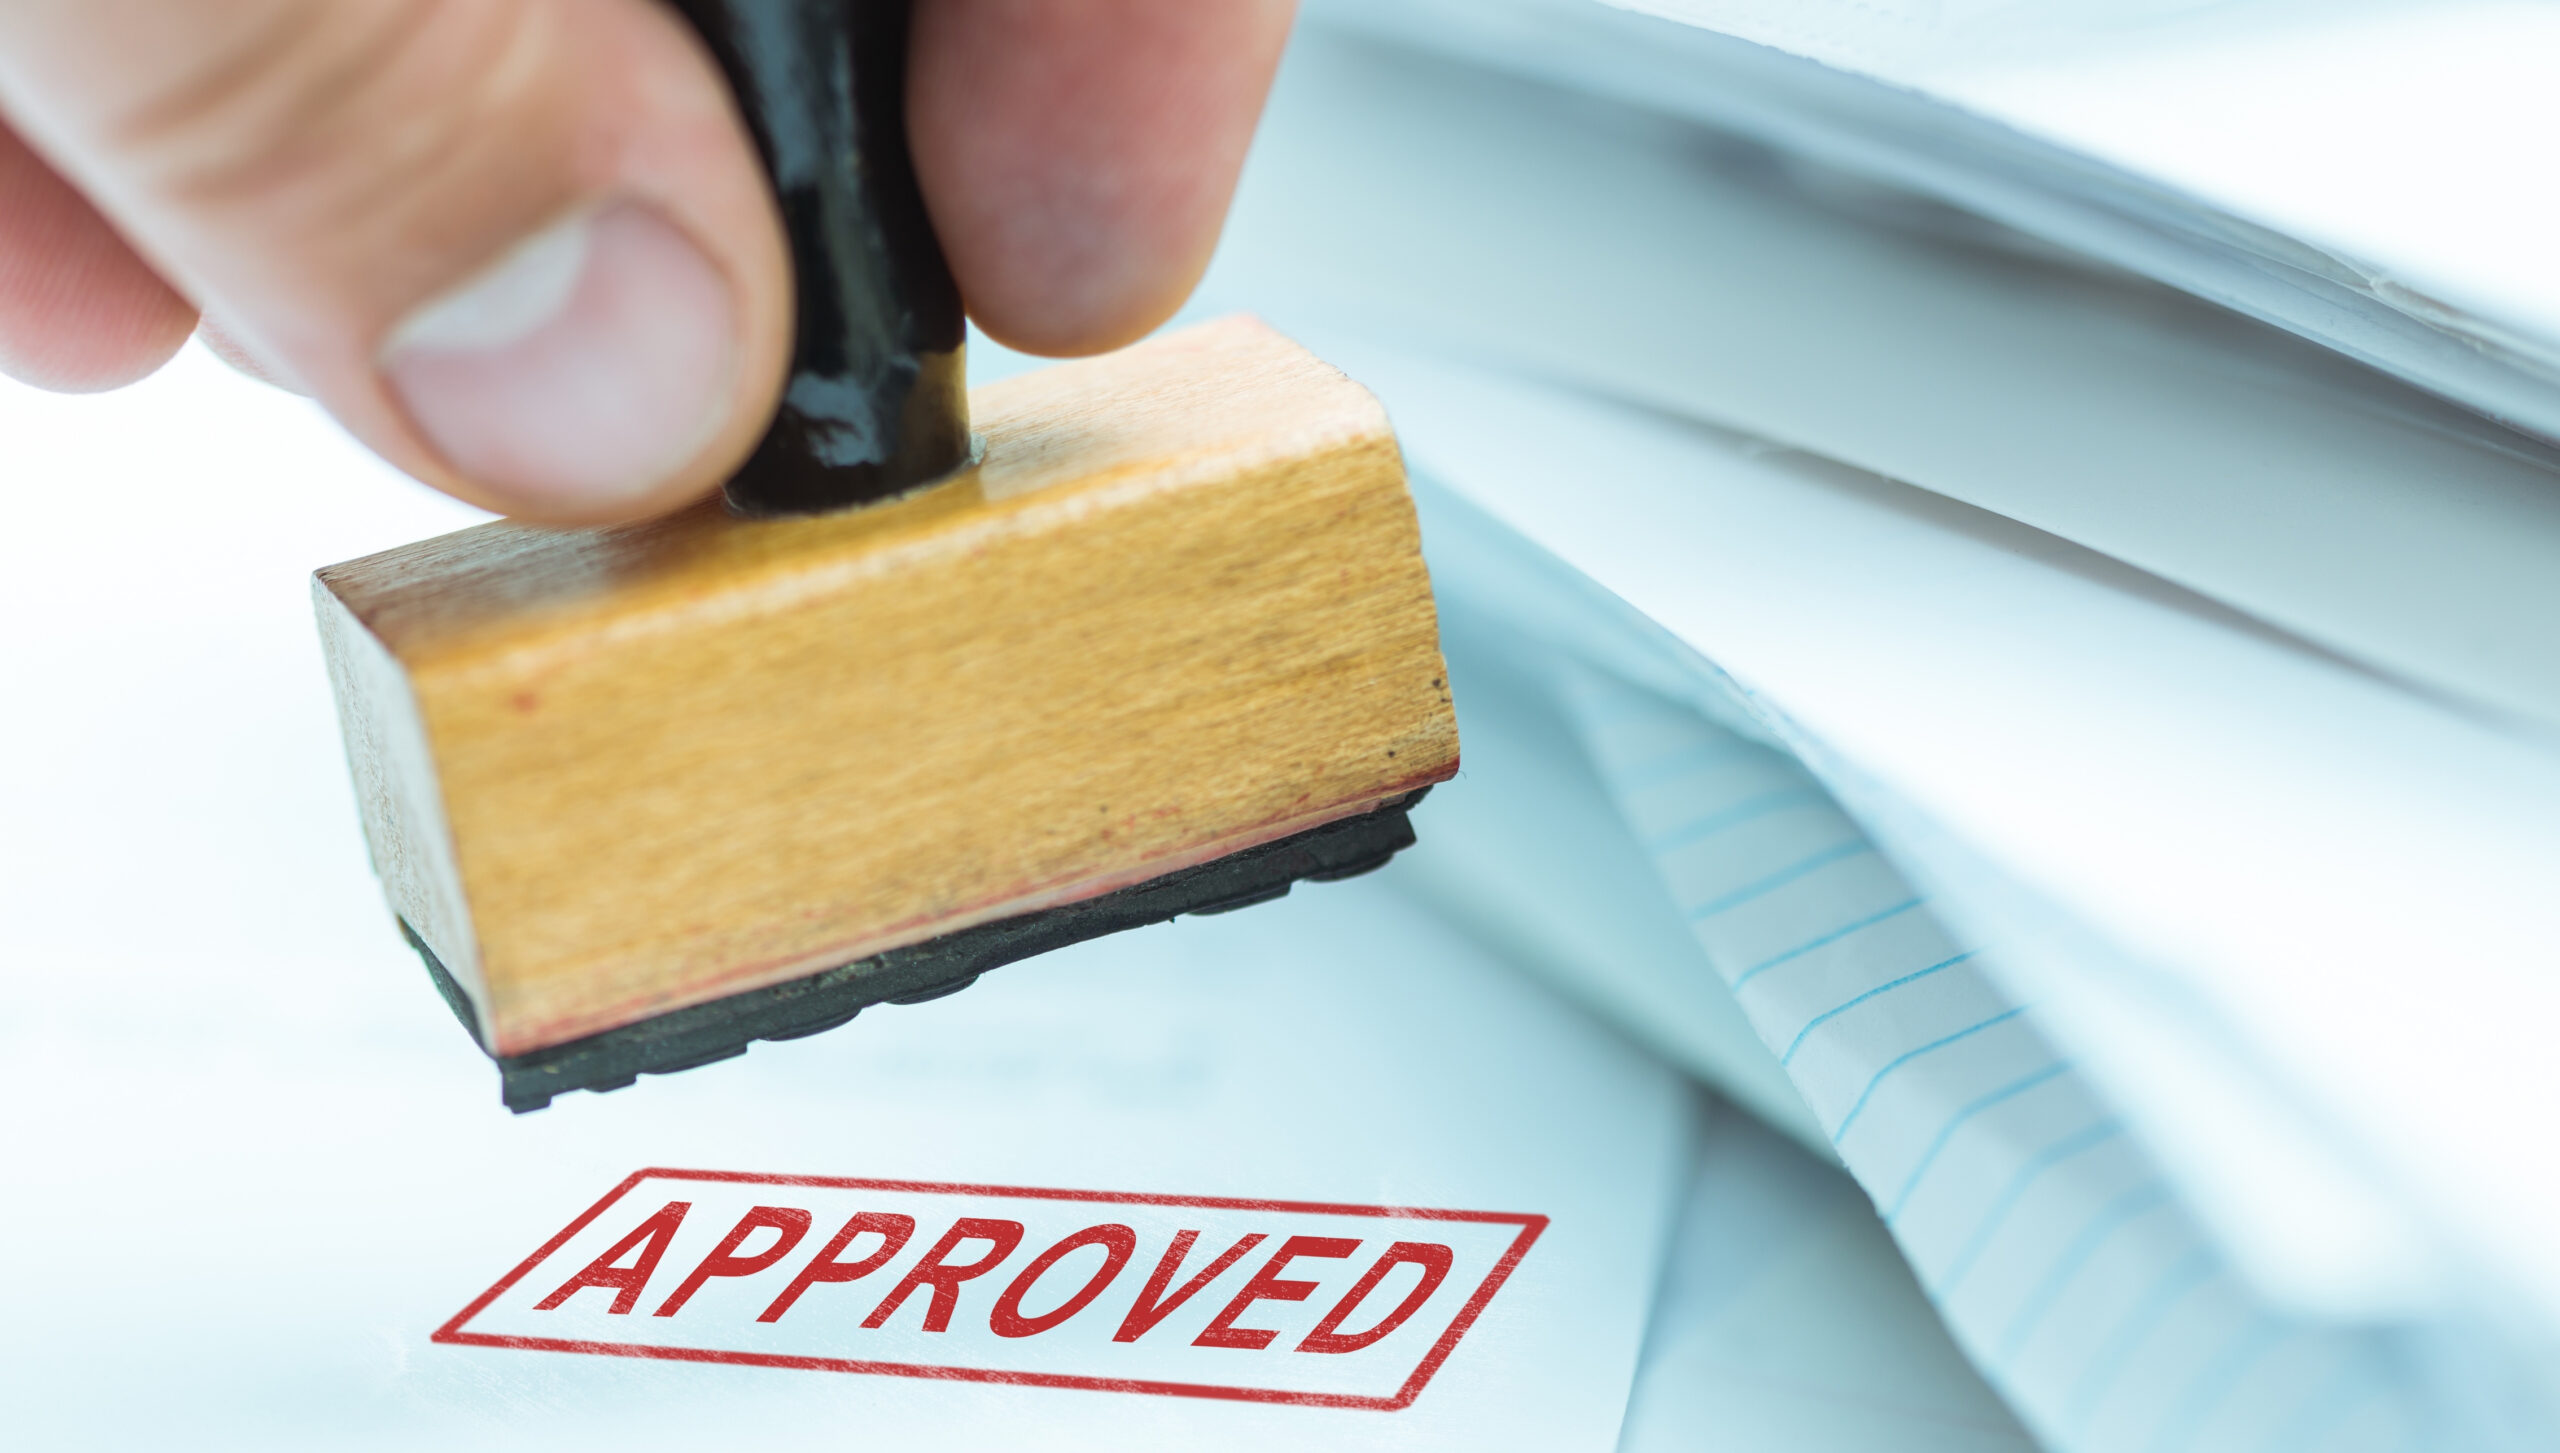 Purchase Approvals: A Guide To Efficiency And Best Practices